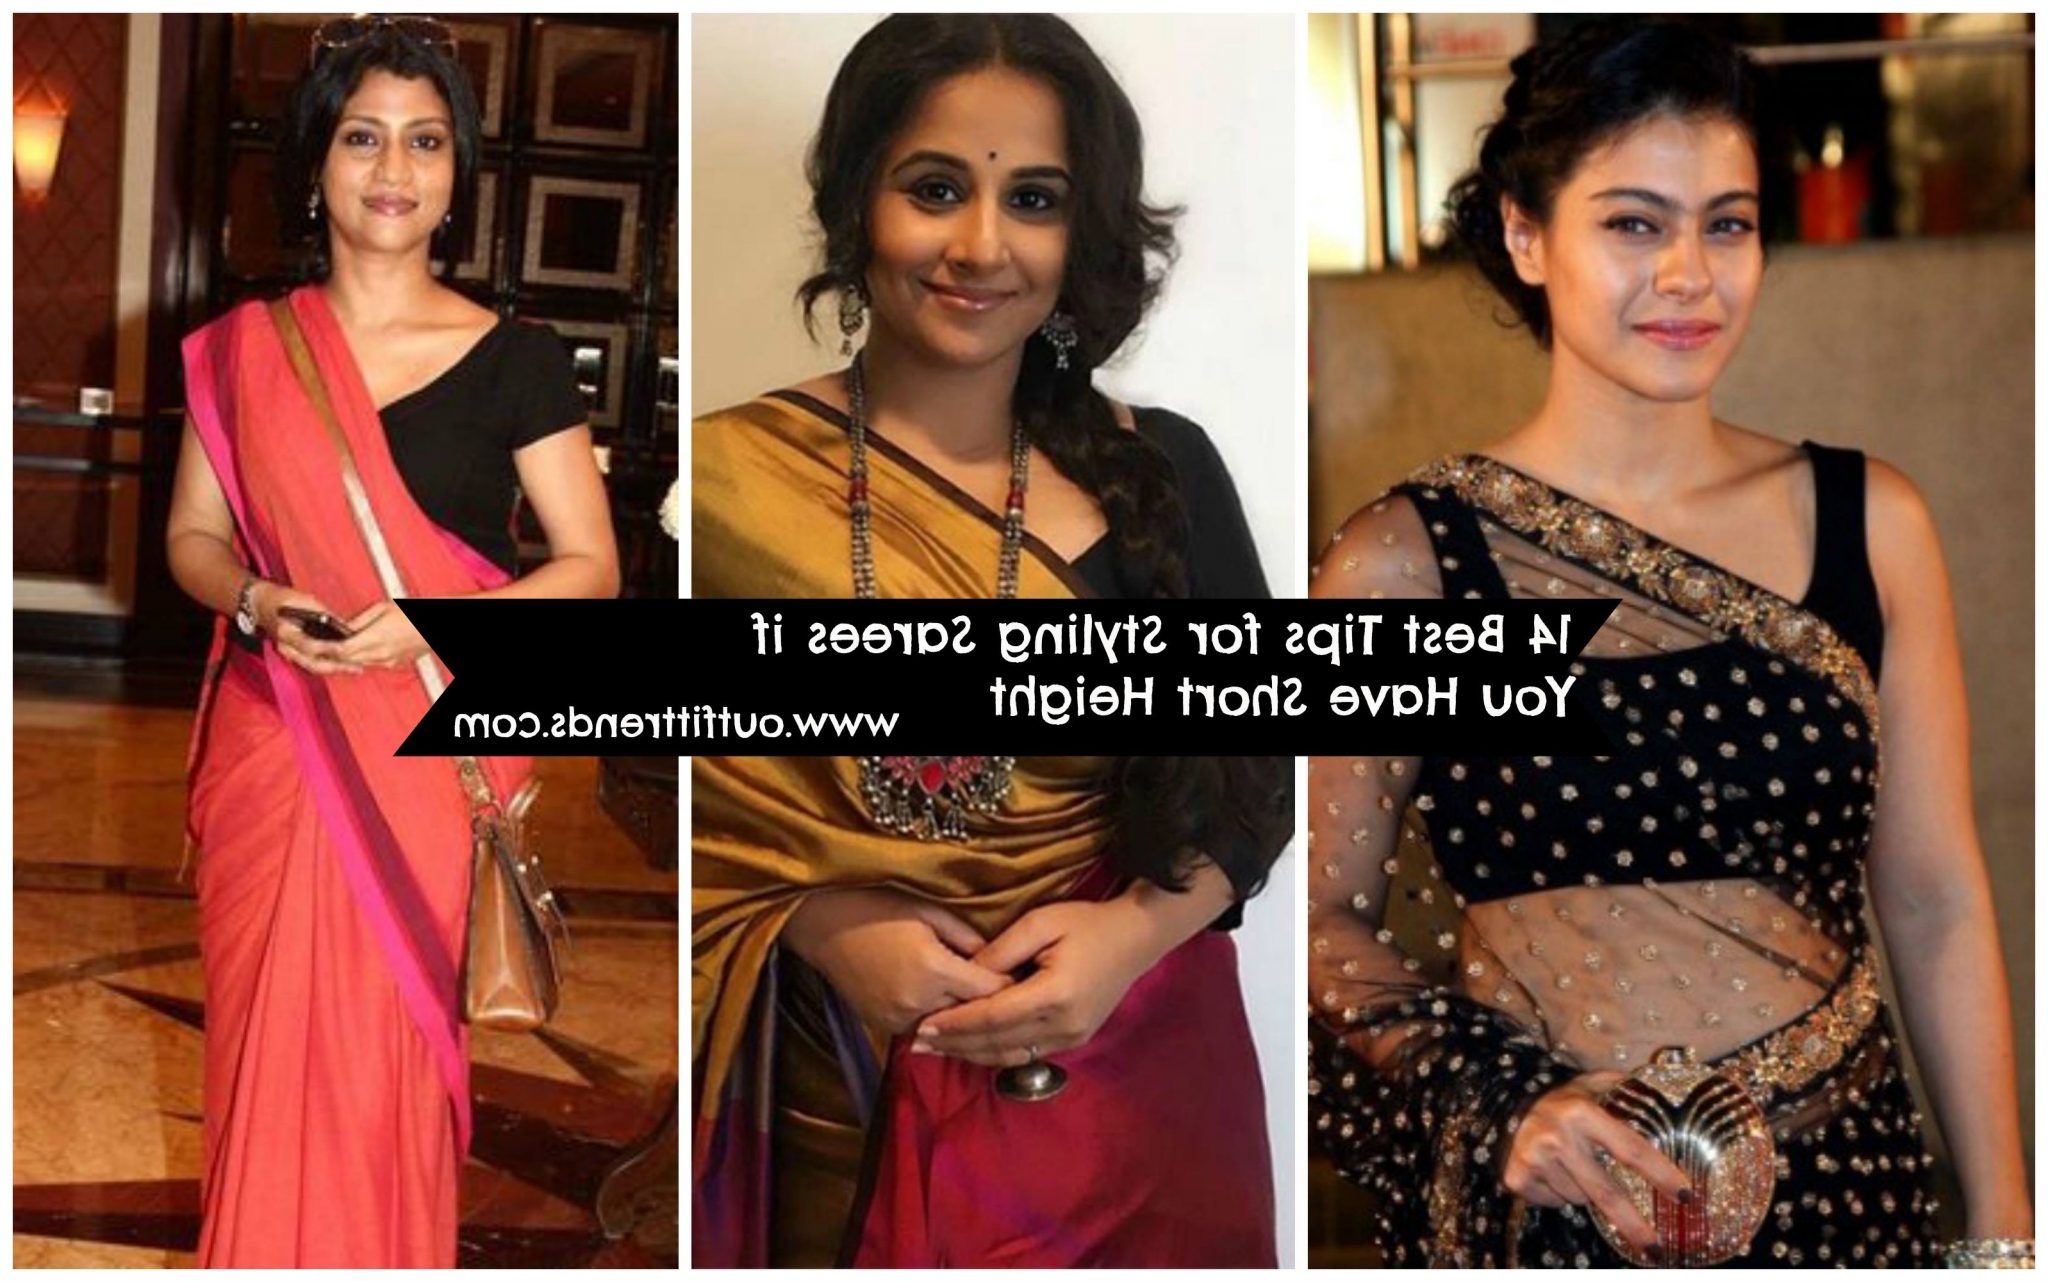 How To Wear Saree For Short Height? 14 Pro Tips For Short Girls Intended For Short Haircuts For Tall Women (View 10 of 25)